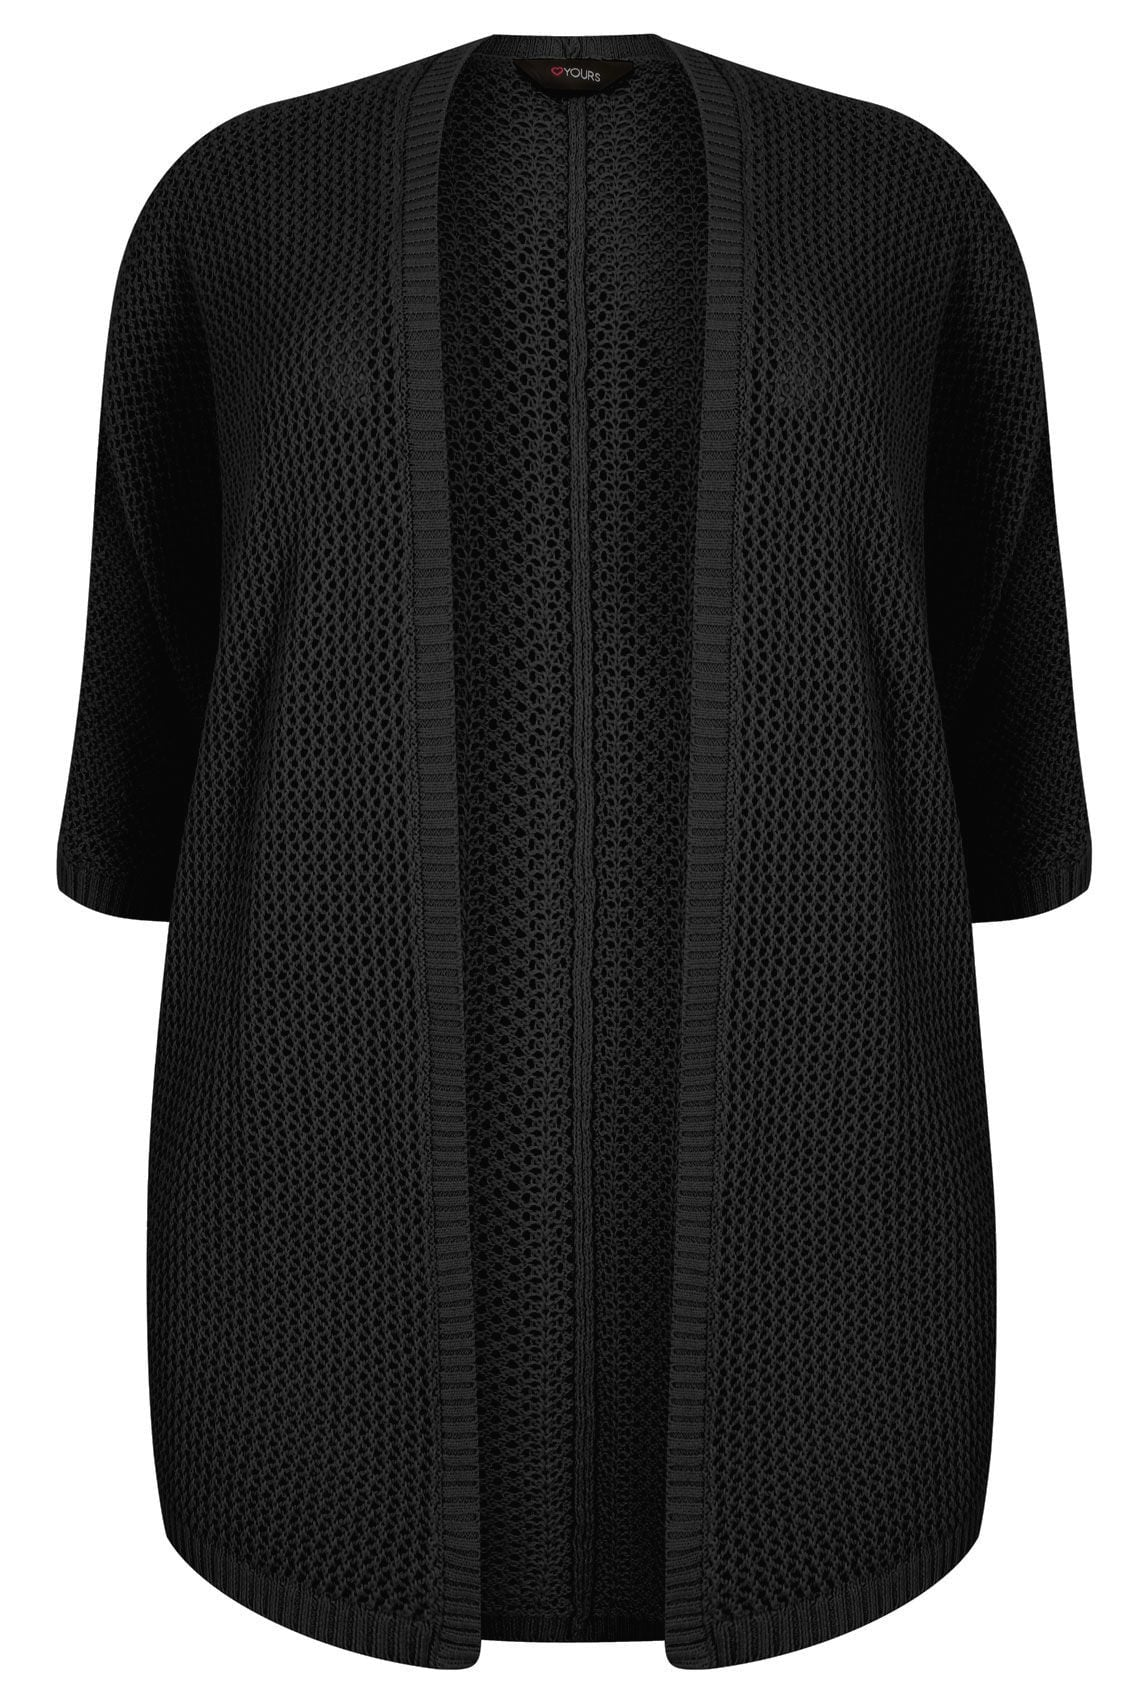 Black Open Knit Cocoon Cardigan With Half Sleeves, Plus size 16 to 36